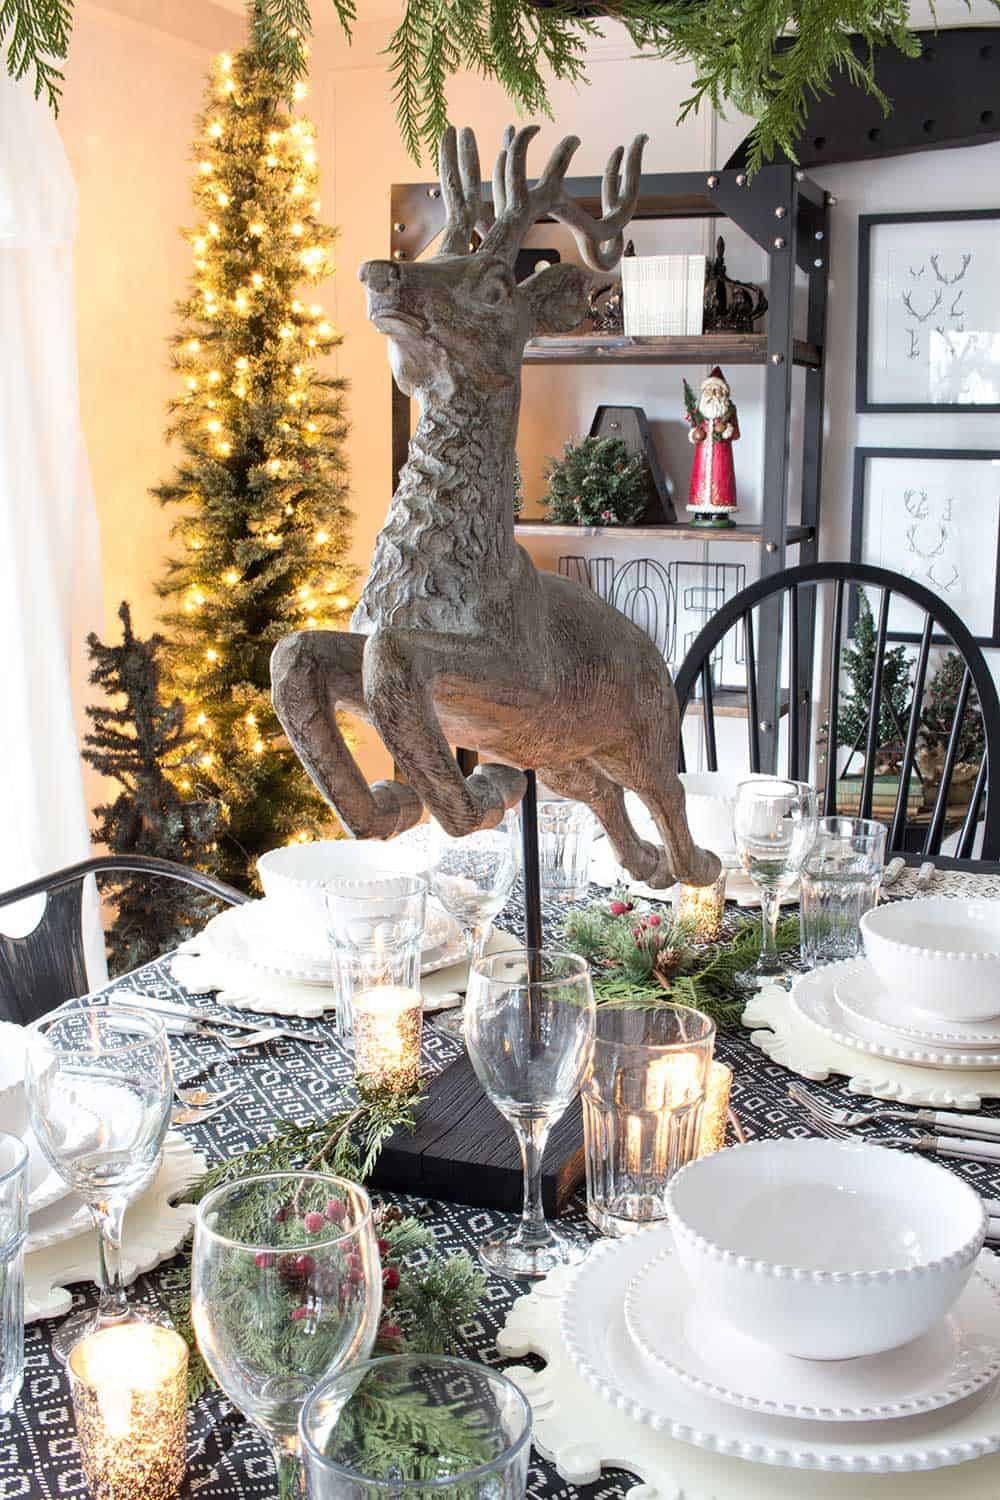 Our Farmhouse Christmas Table + 5 More Farmhouse Holiday Table Ideas